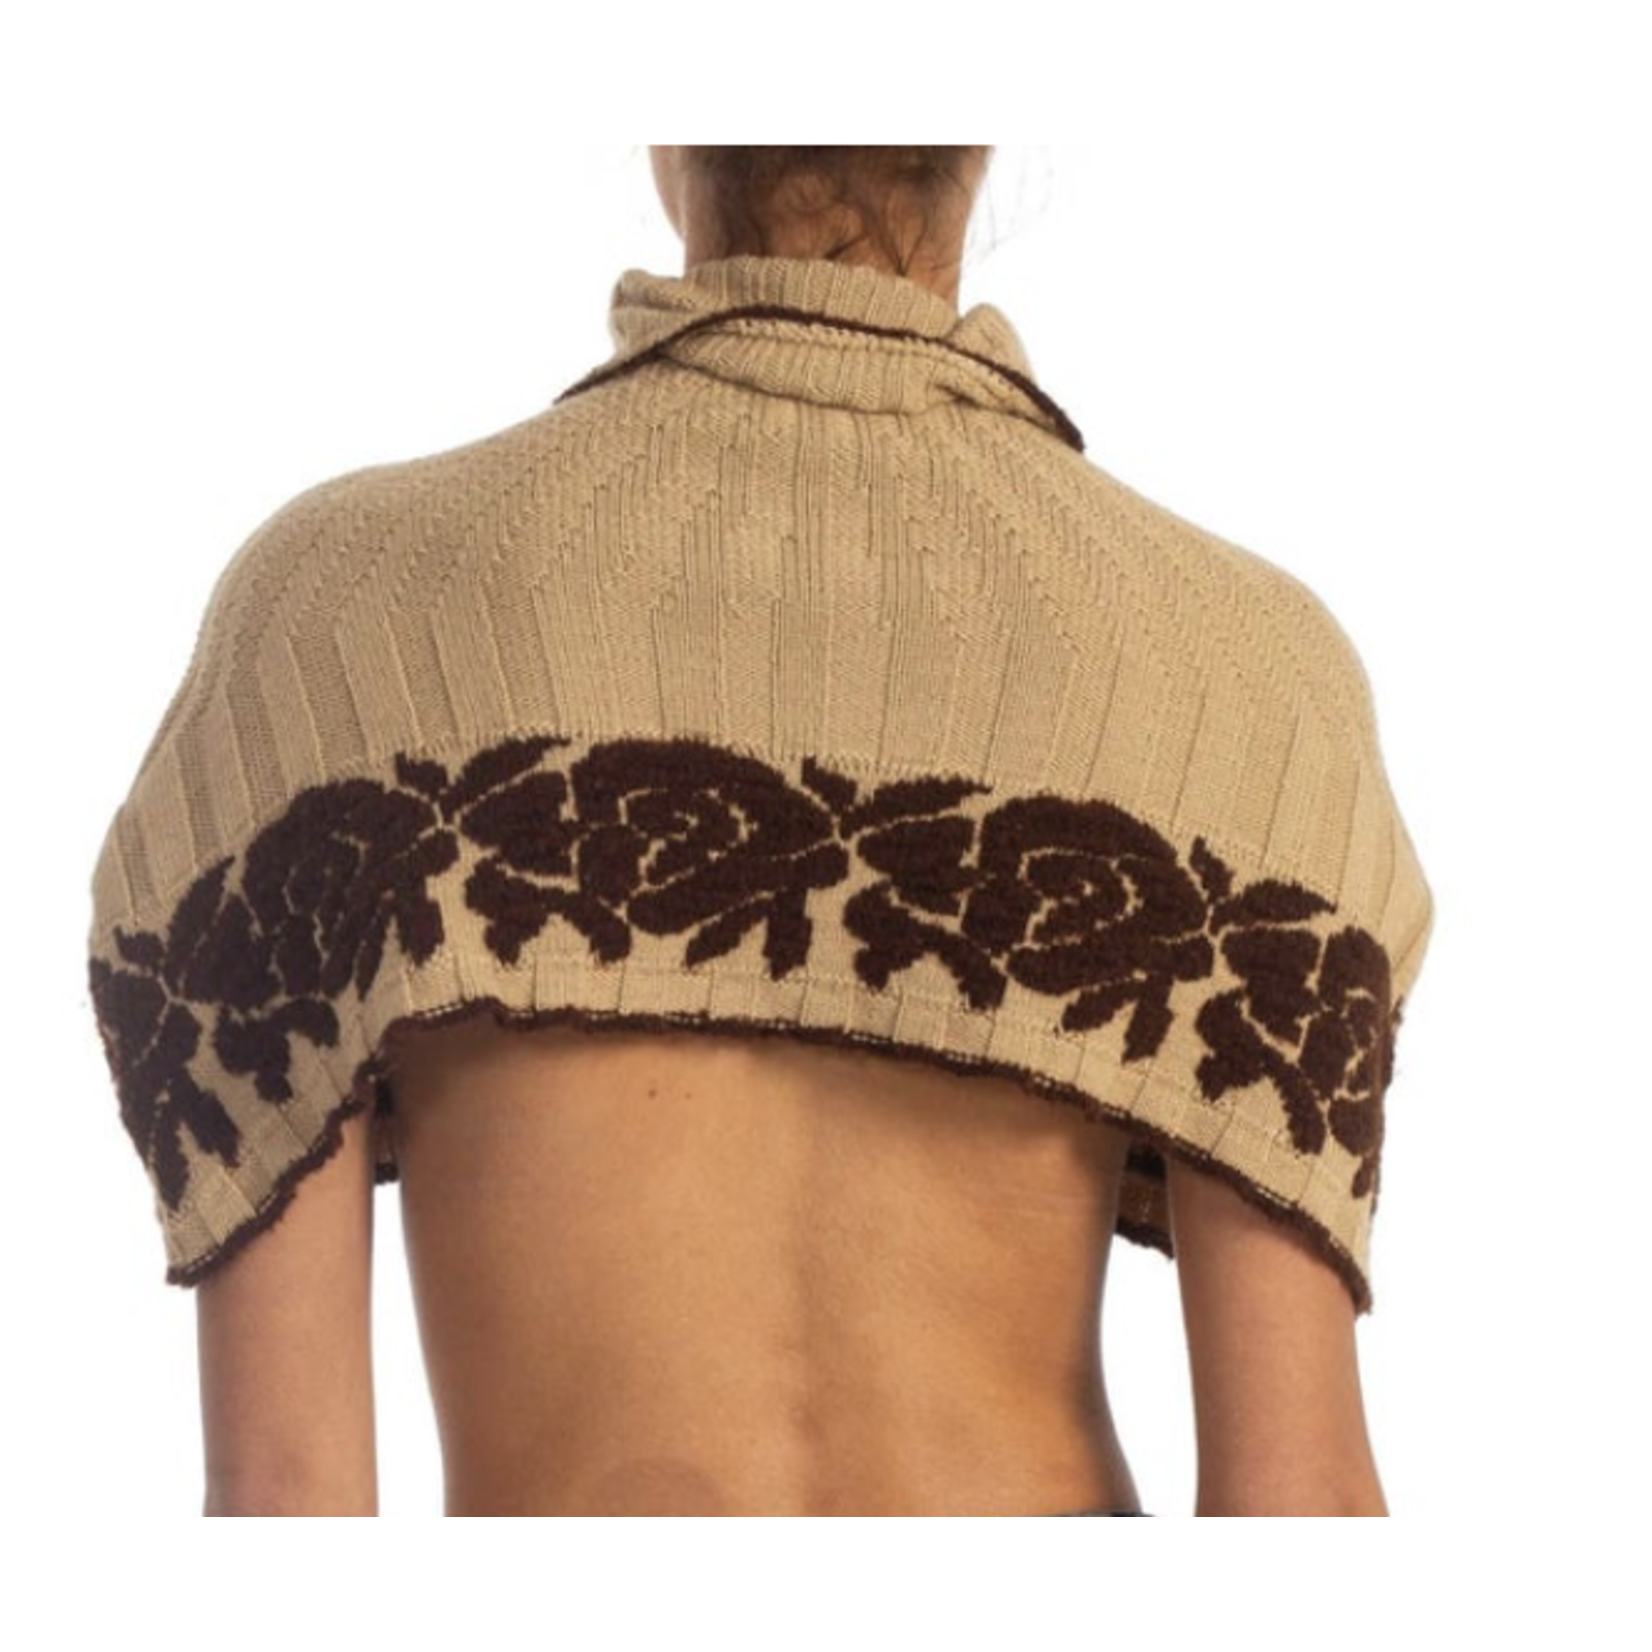 Morphew 1970s Beige & Brown Wool Blend Knit Sweater Cape with Rose Intarsia